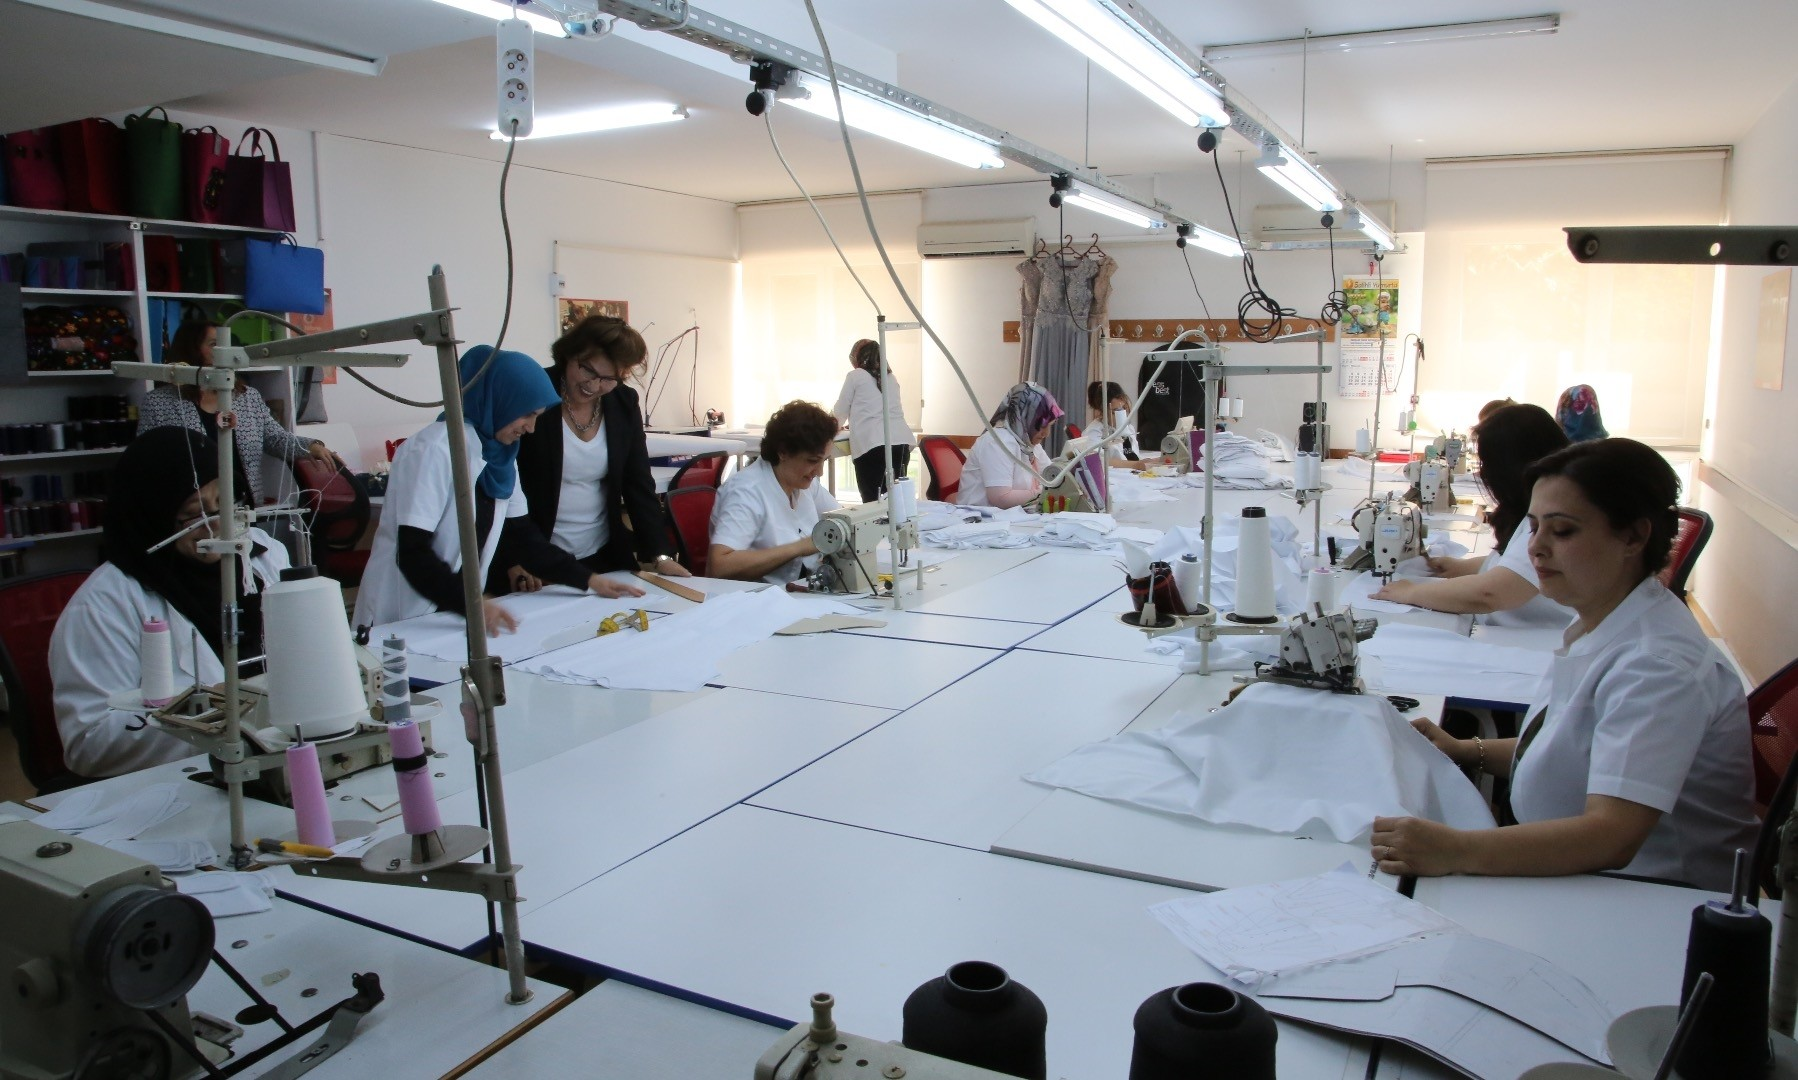 At the workshop in Soma, women sew uniforms for export to 42 countries.